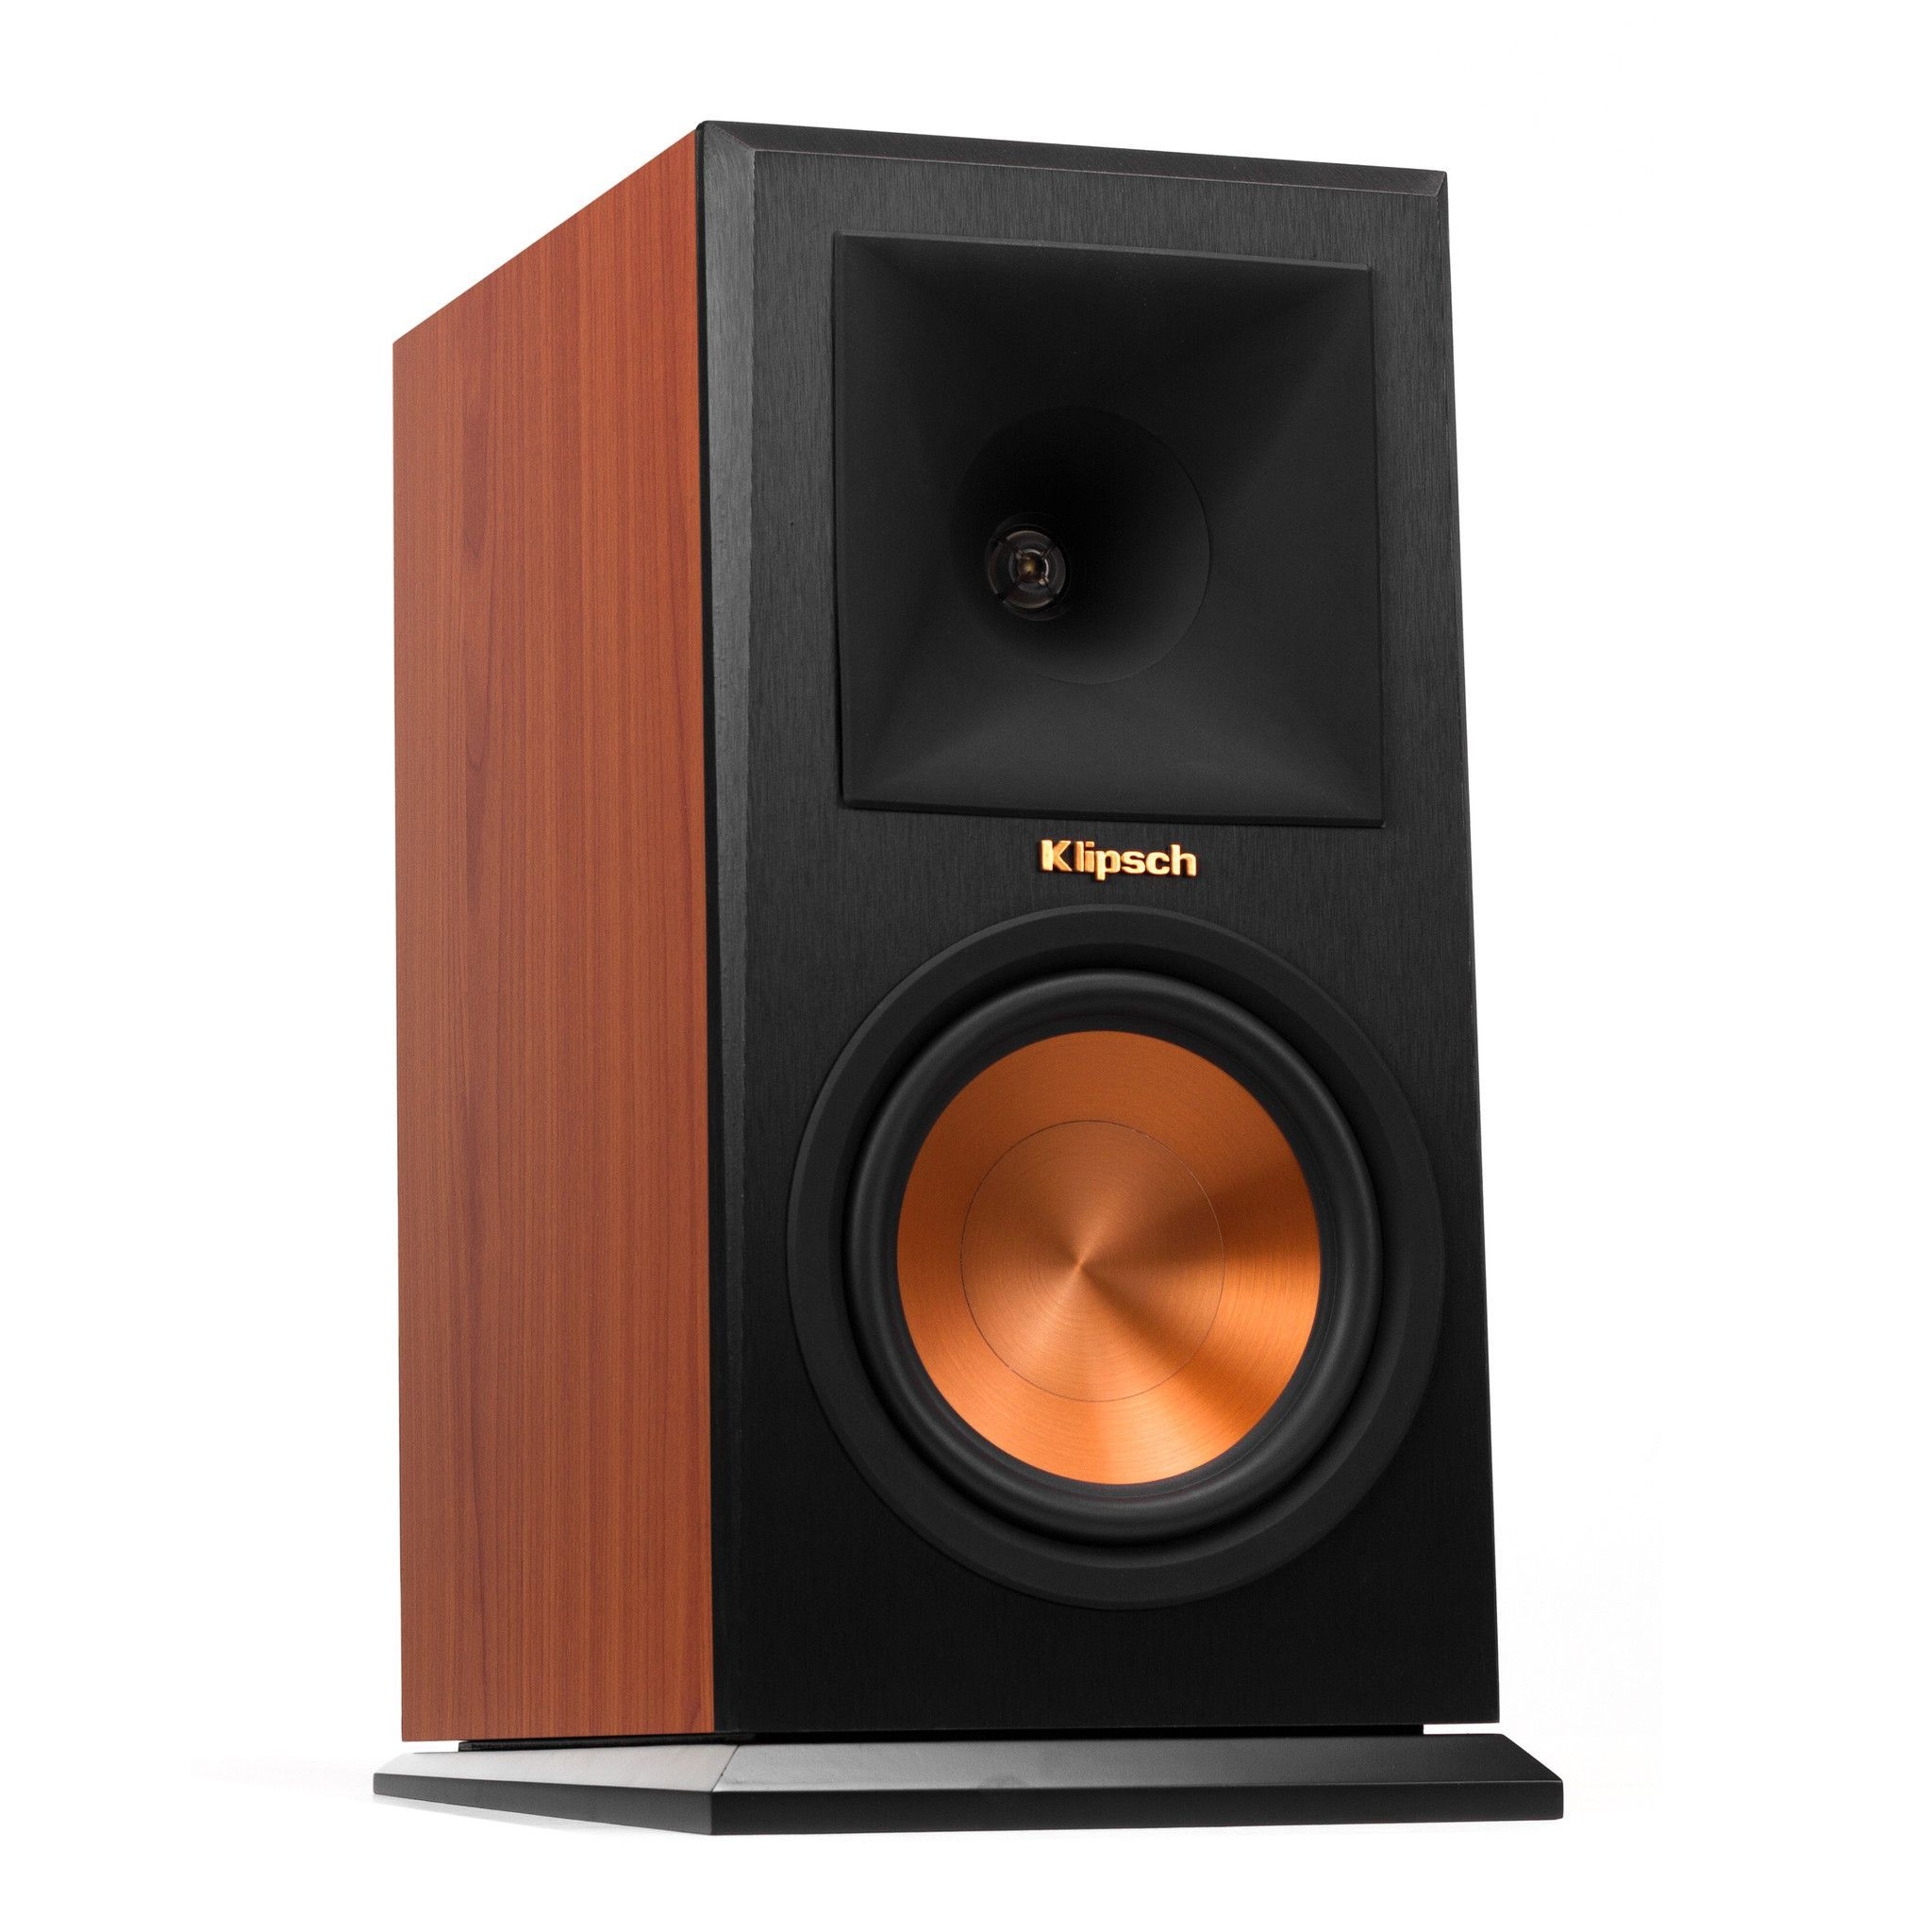 Klipsch Reference Premiere RP-160M monitors pack bold, theater-quality sound in a compact, bookshelf speaker – making them easy to place in virtually any room layout. Each speaker is equipped with a 6